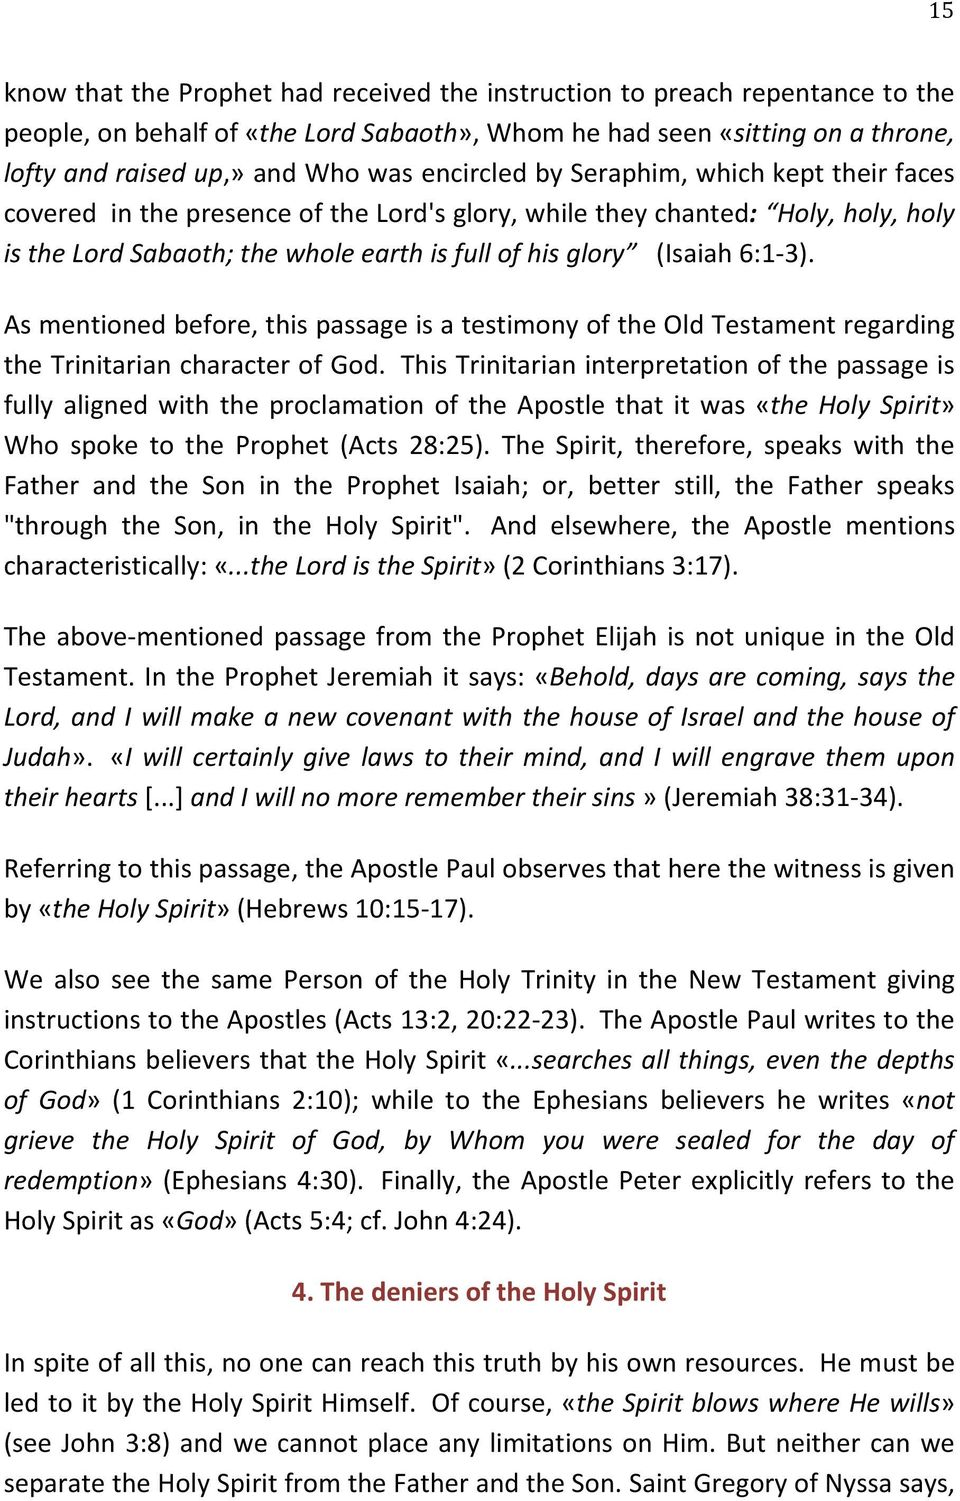 6:1-3). As mentioned before, this passage is a testimony of the Old Testament regarding the Trinitarian character of God.